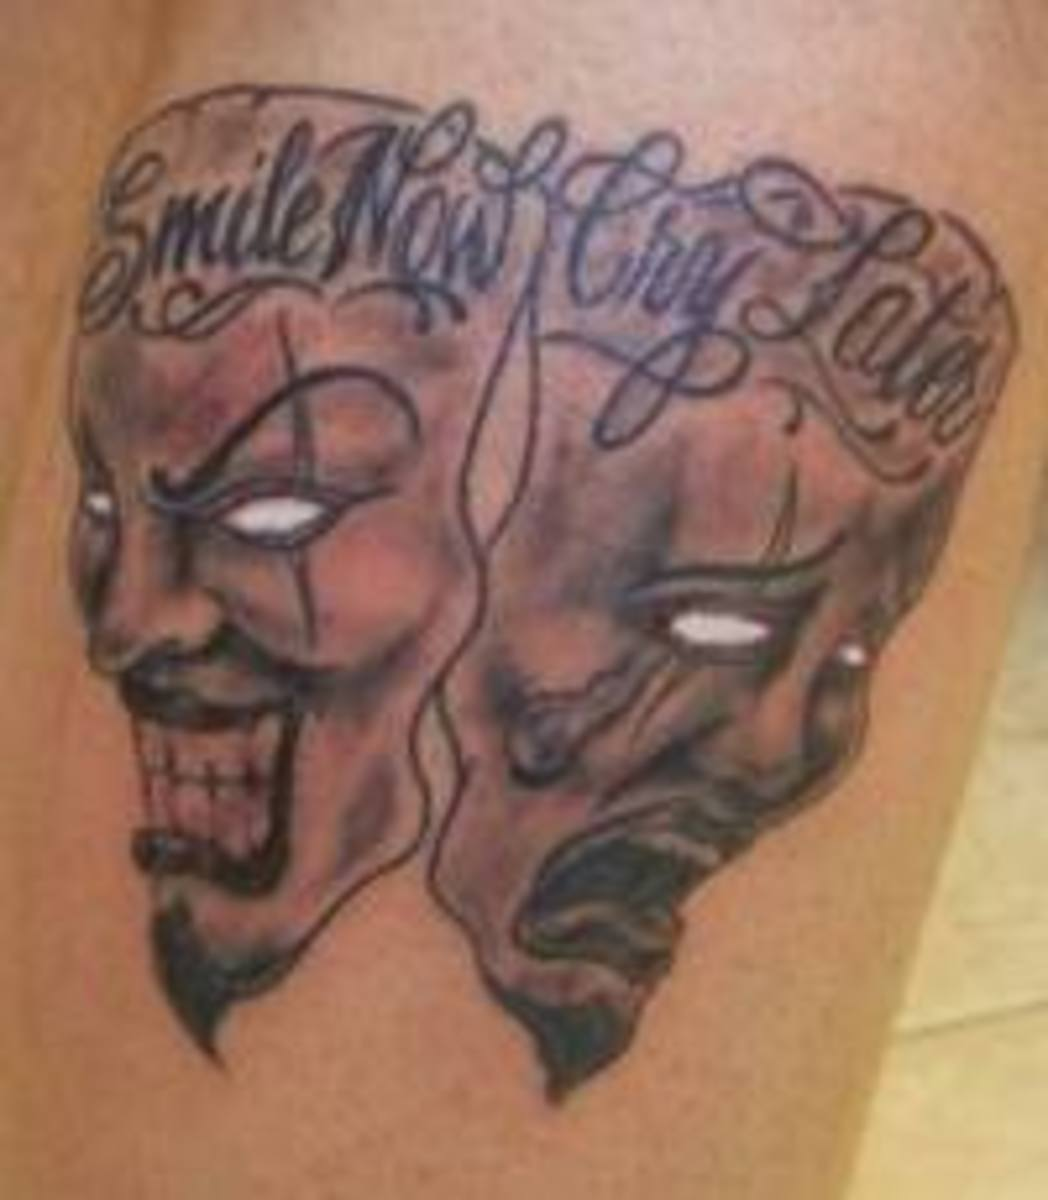 "Another ""smile now, cry later"" tattoo in a similar style."